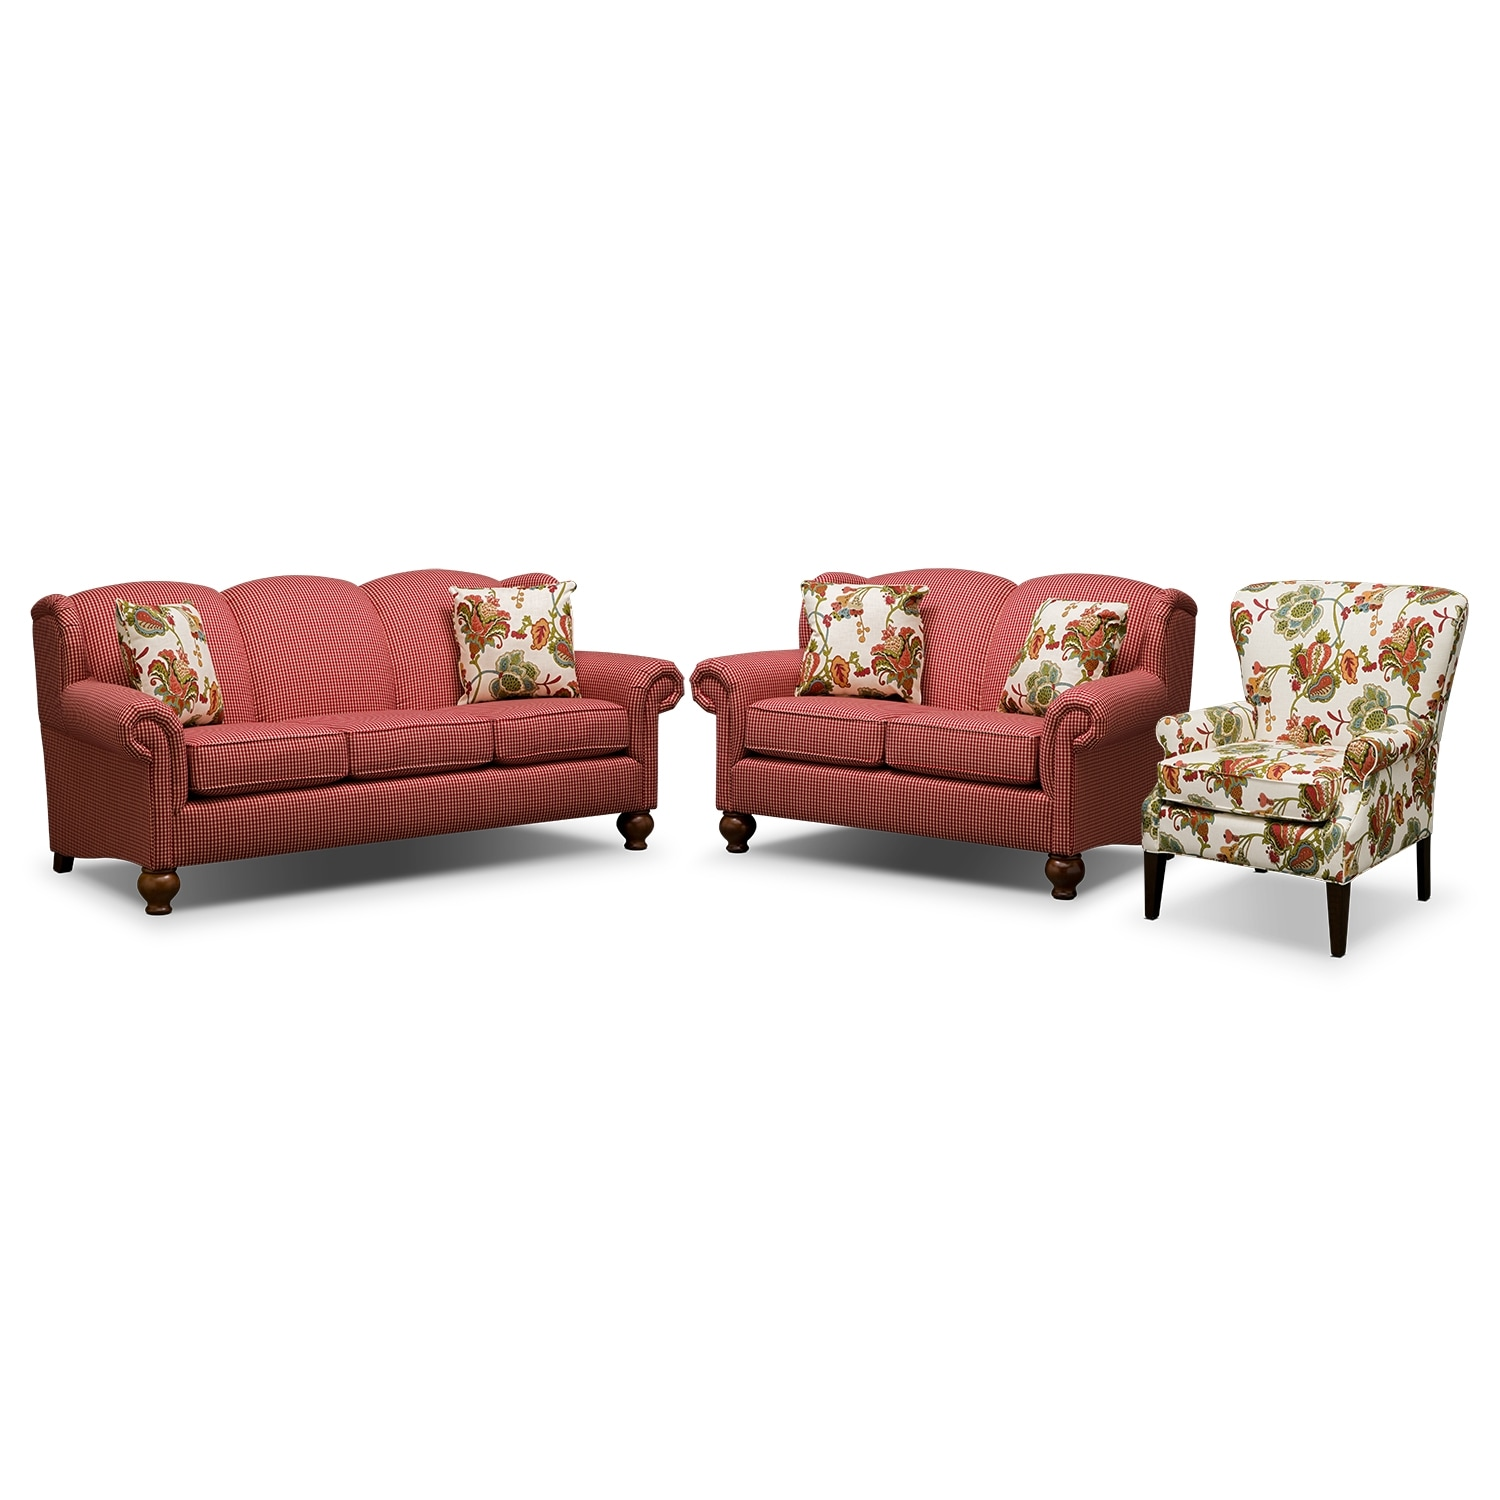 Living Room Furniture - Charlotte 3 Pc. Living Room w/ Accent Chair